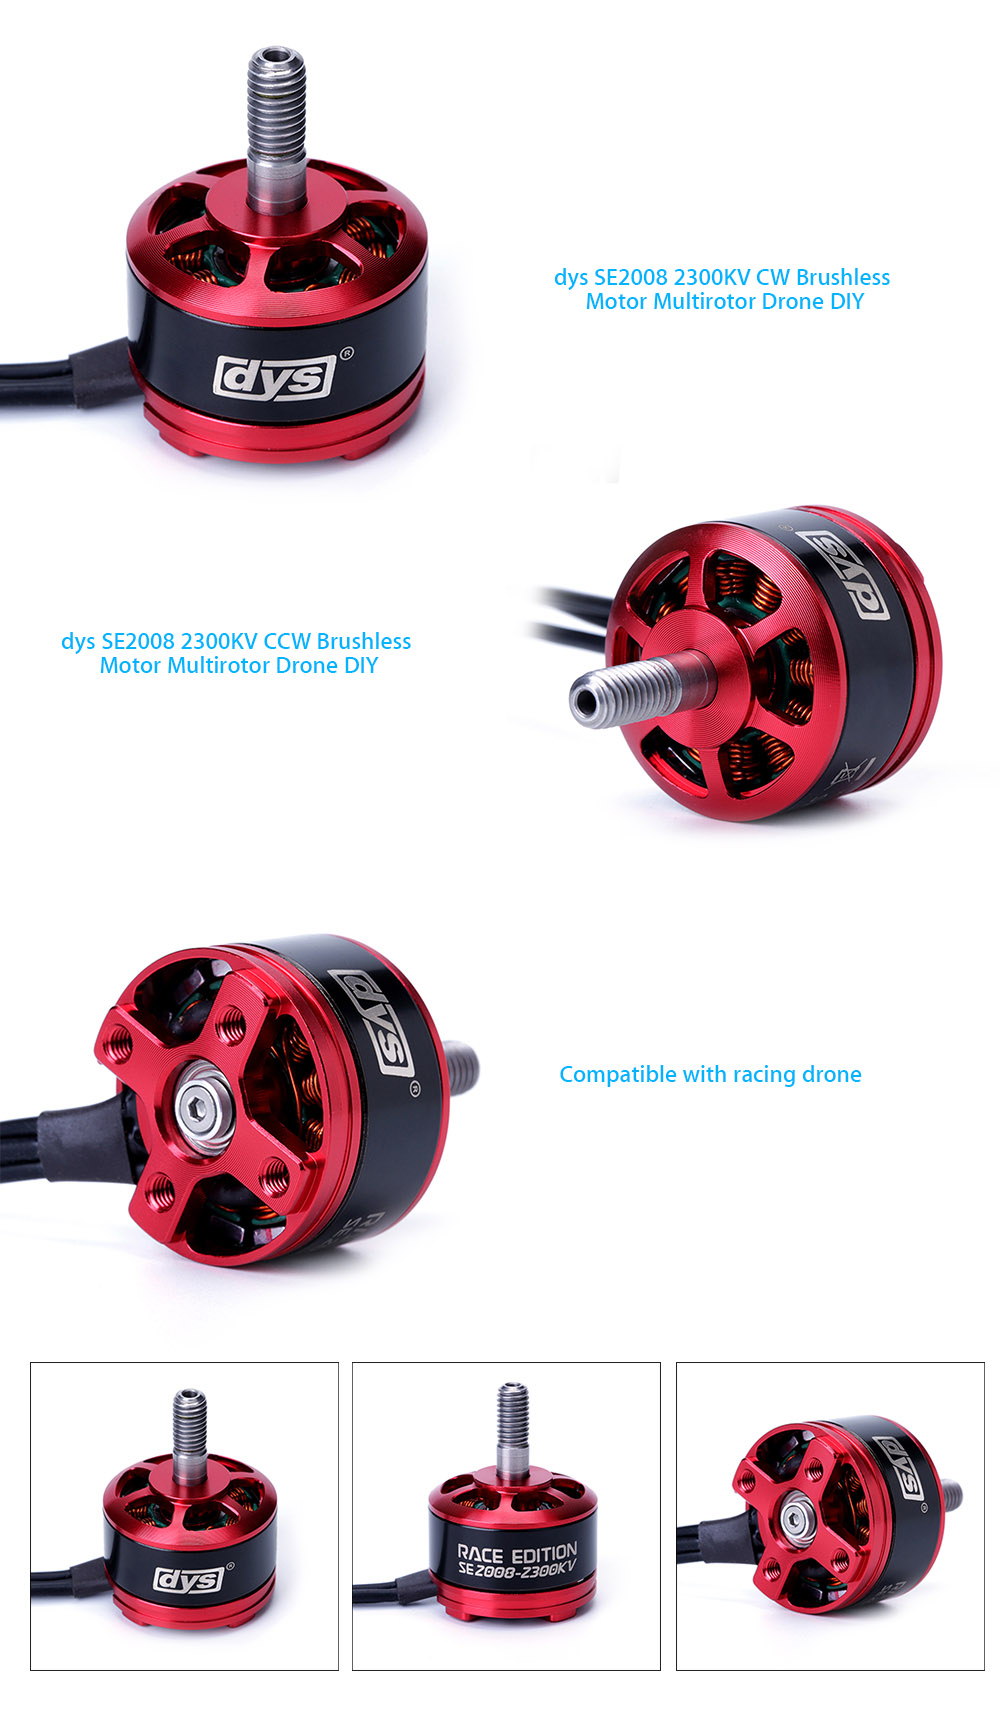 dys SE2008 2550KV CW Brushless Motor Multirotor Drone DIY Spare Part